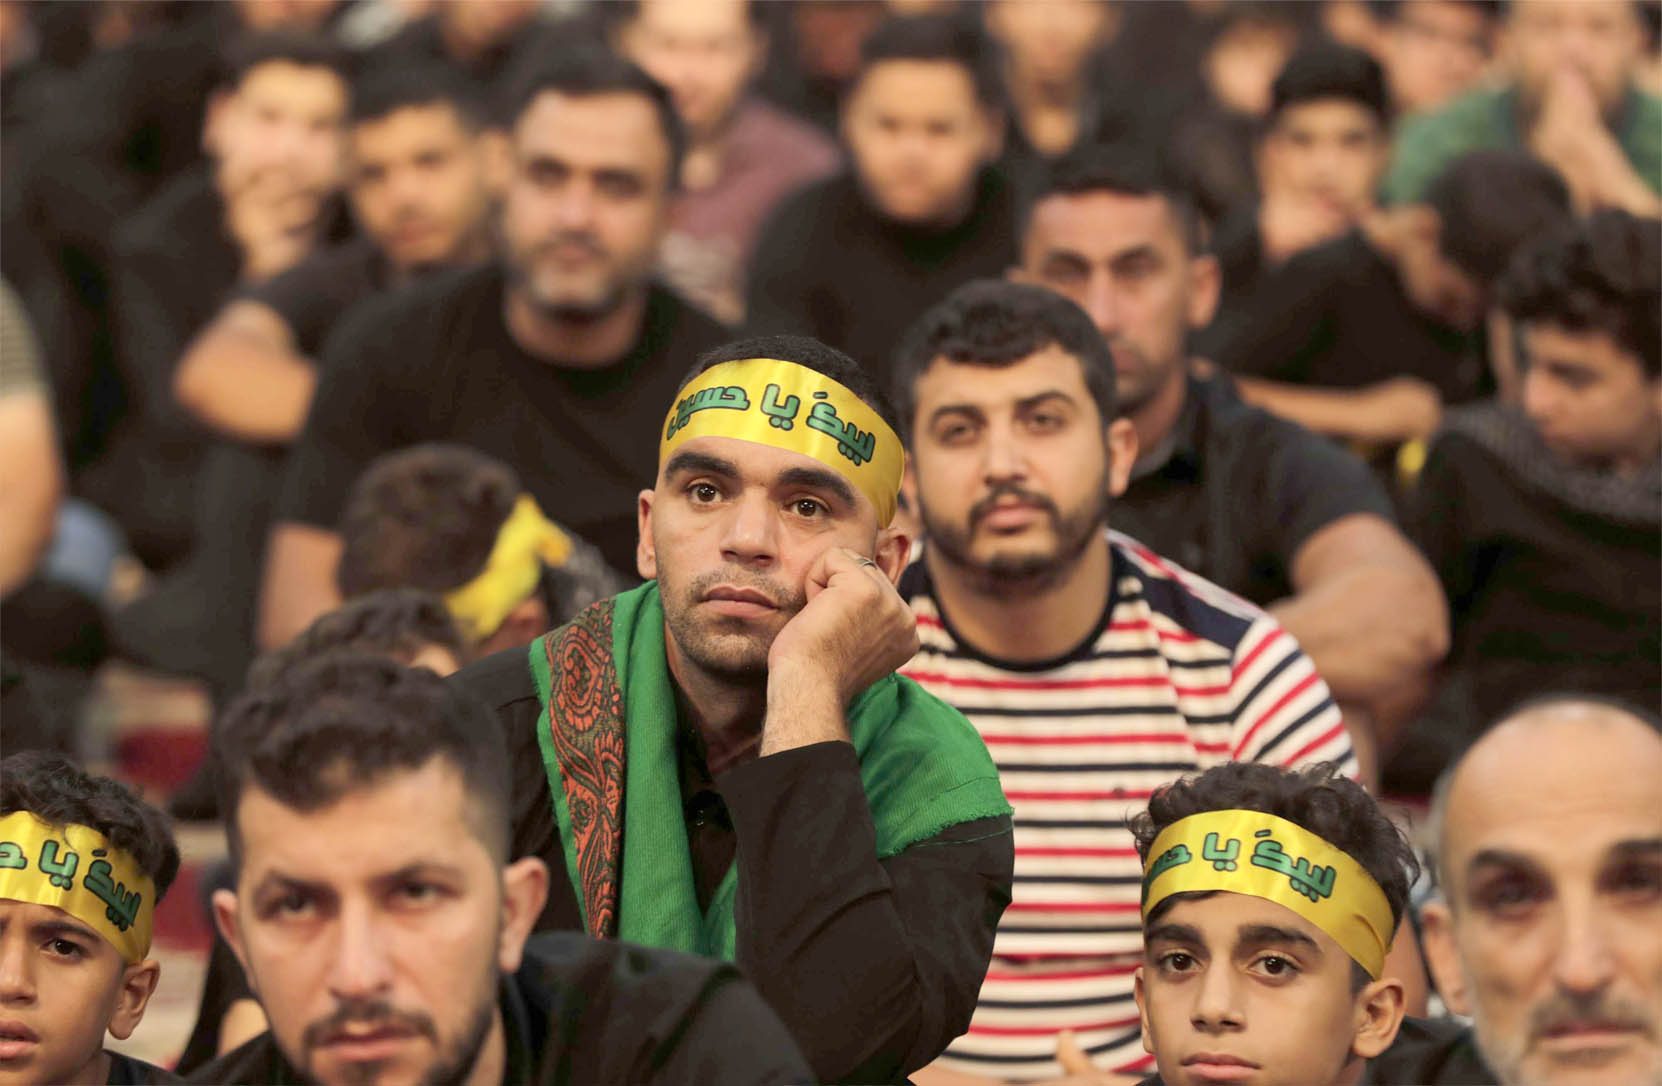 Supporters of the Lebanese Hezbollah movement gather to watch the transmission of a speech by the movement's leader in Beirut's southern suburbs, August 31. (AFP)